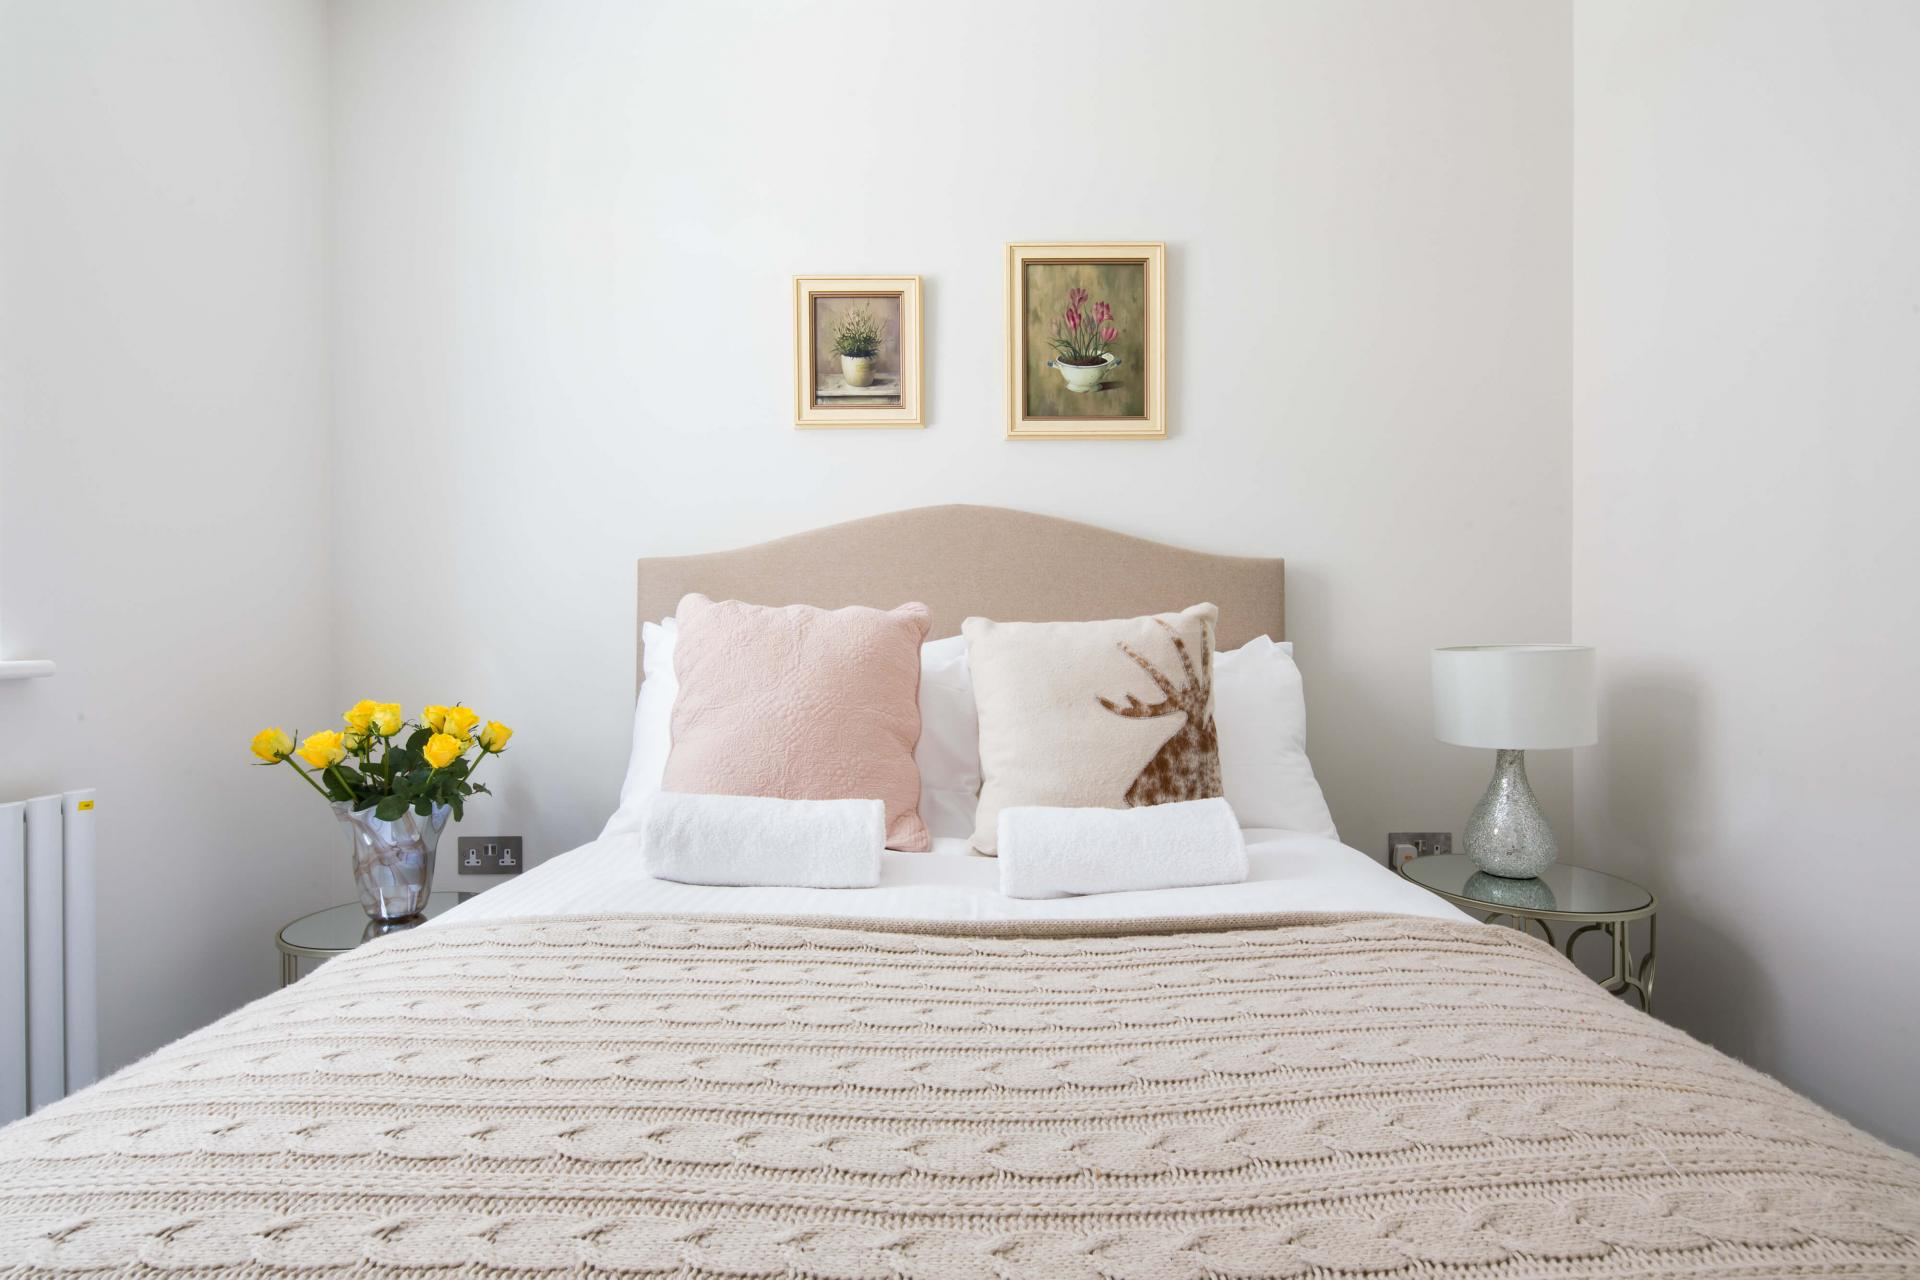 Bedding at Rainsford Mews, Paddington, London - Citybase Apartments